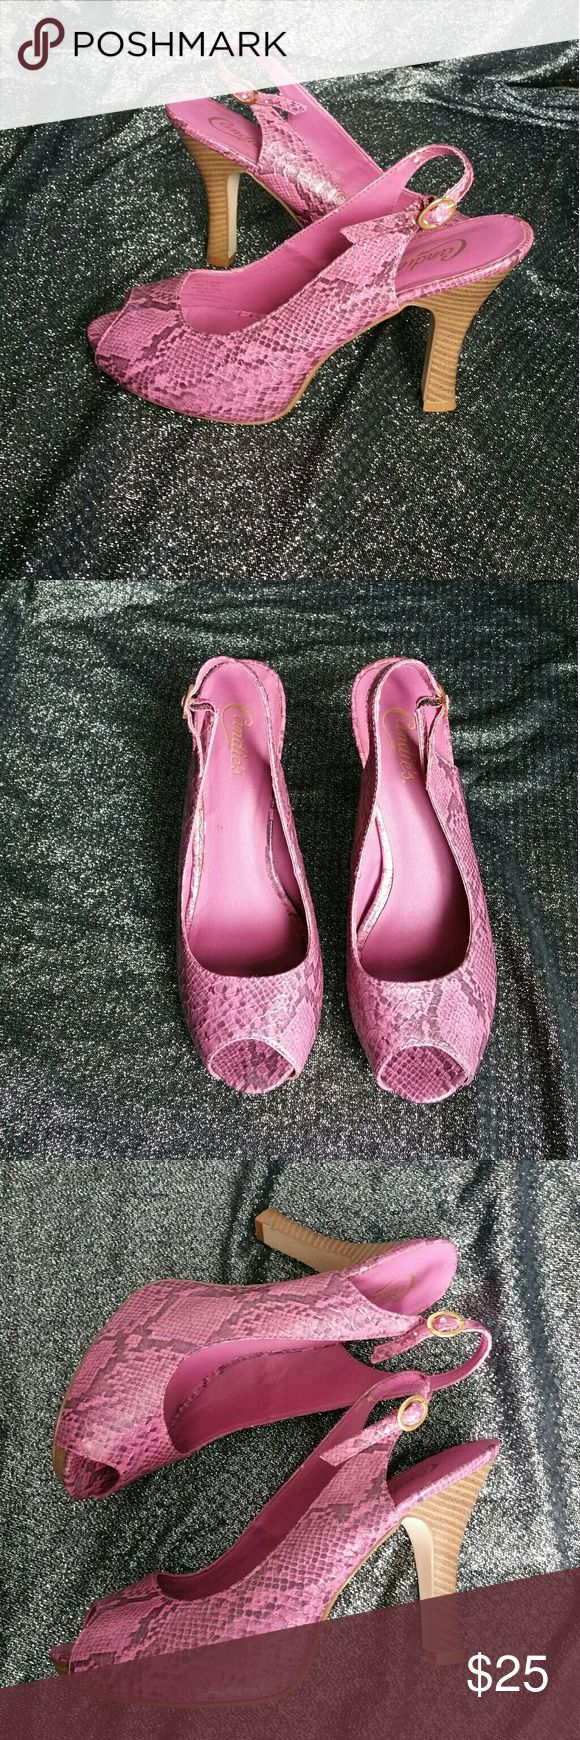 """Candies Peep Toe Snake Print Purple Heels, Size 9 These are **LIKE NEW** open toe, slingback, high heels by Candie's. The model is called """"Prittie Print"""".  They are faux snake skin print.  The pictures look more pink but the last picture shows the true color, which is more purple.  There is also gold glitter in the print too, which is hard to see in the photos. Pix don't do these heels justice!   1 inch platform at thickest part, 1/2 inch at toe. 4 1/2 inch heel. Size 9. Medium Width…"""